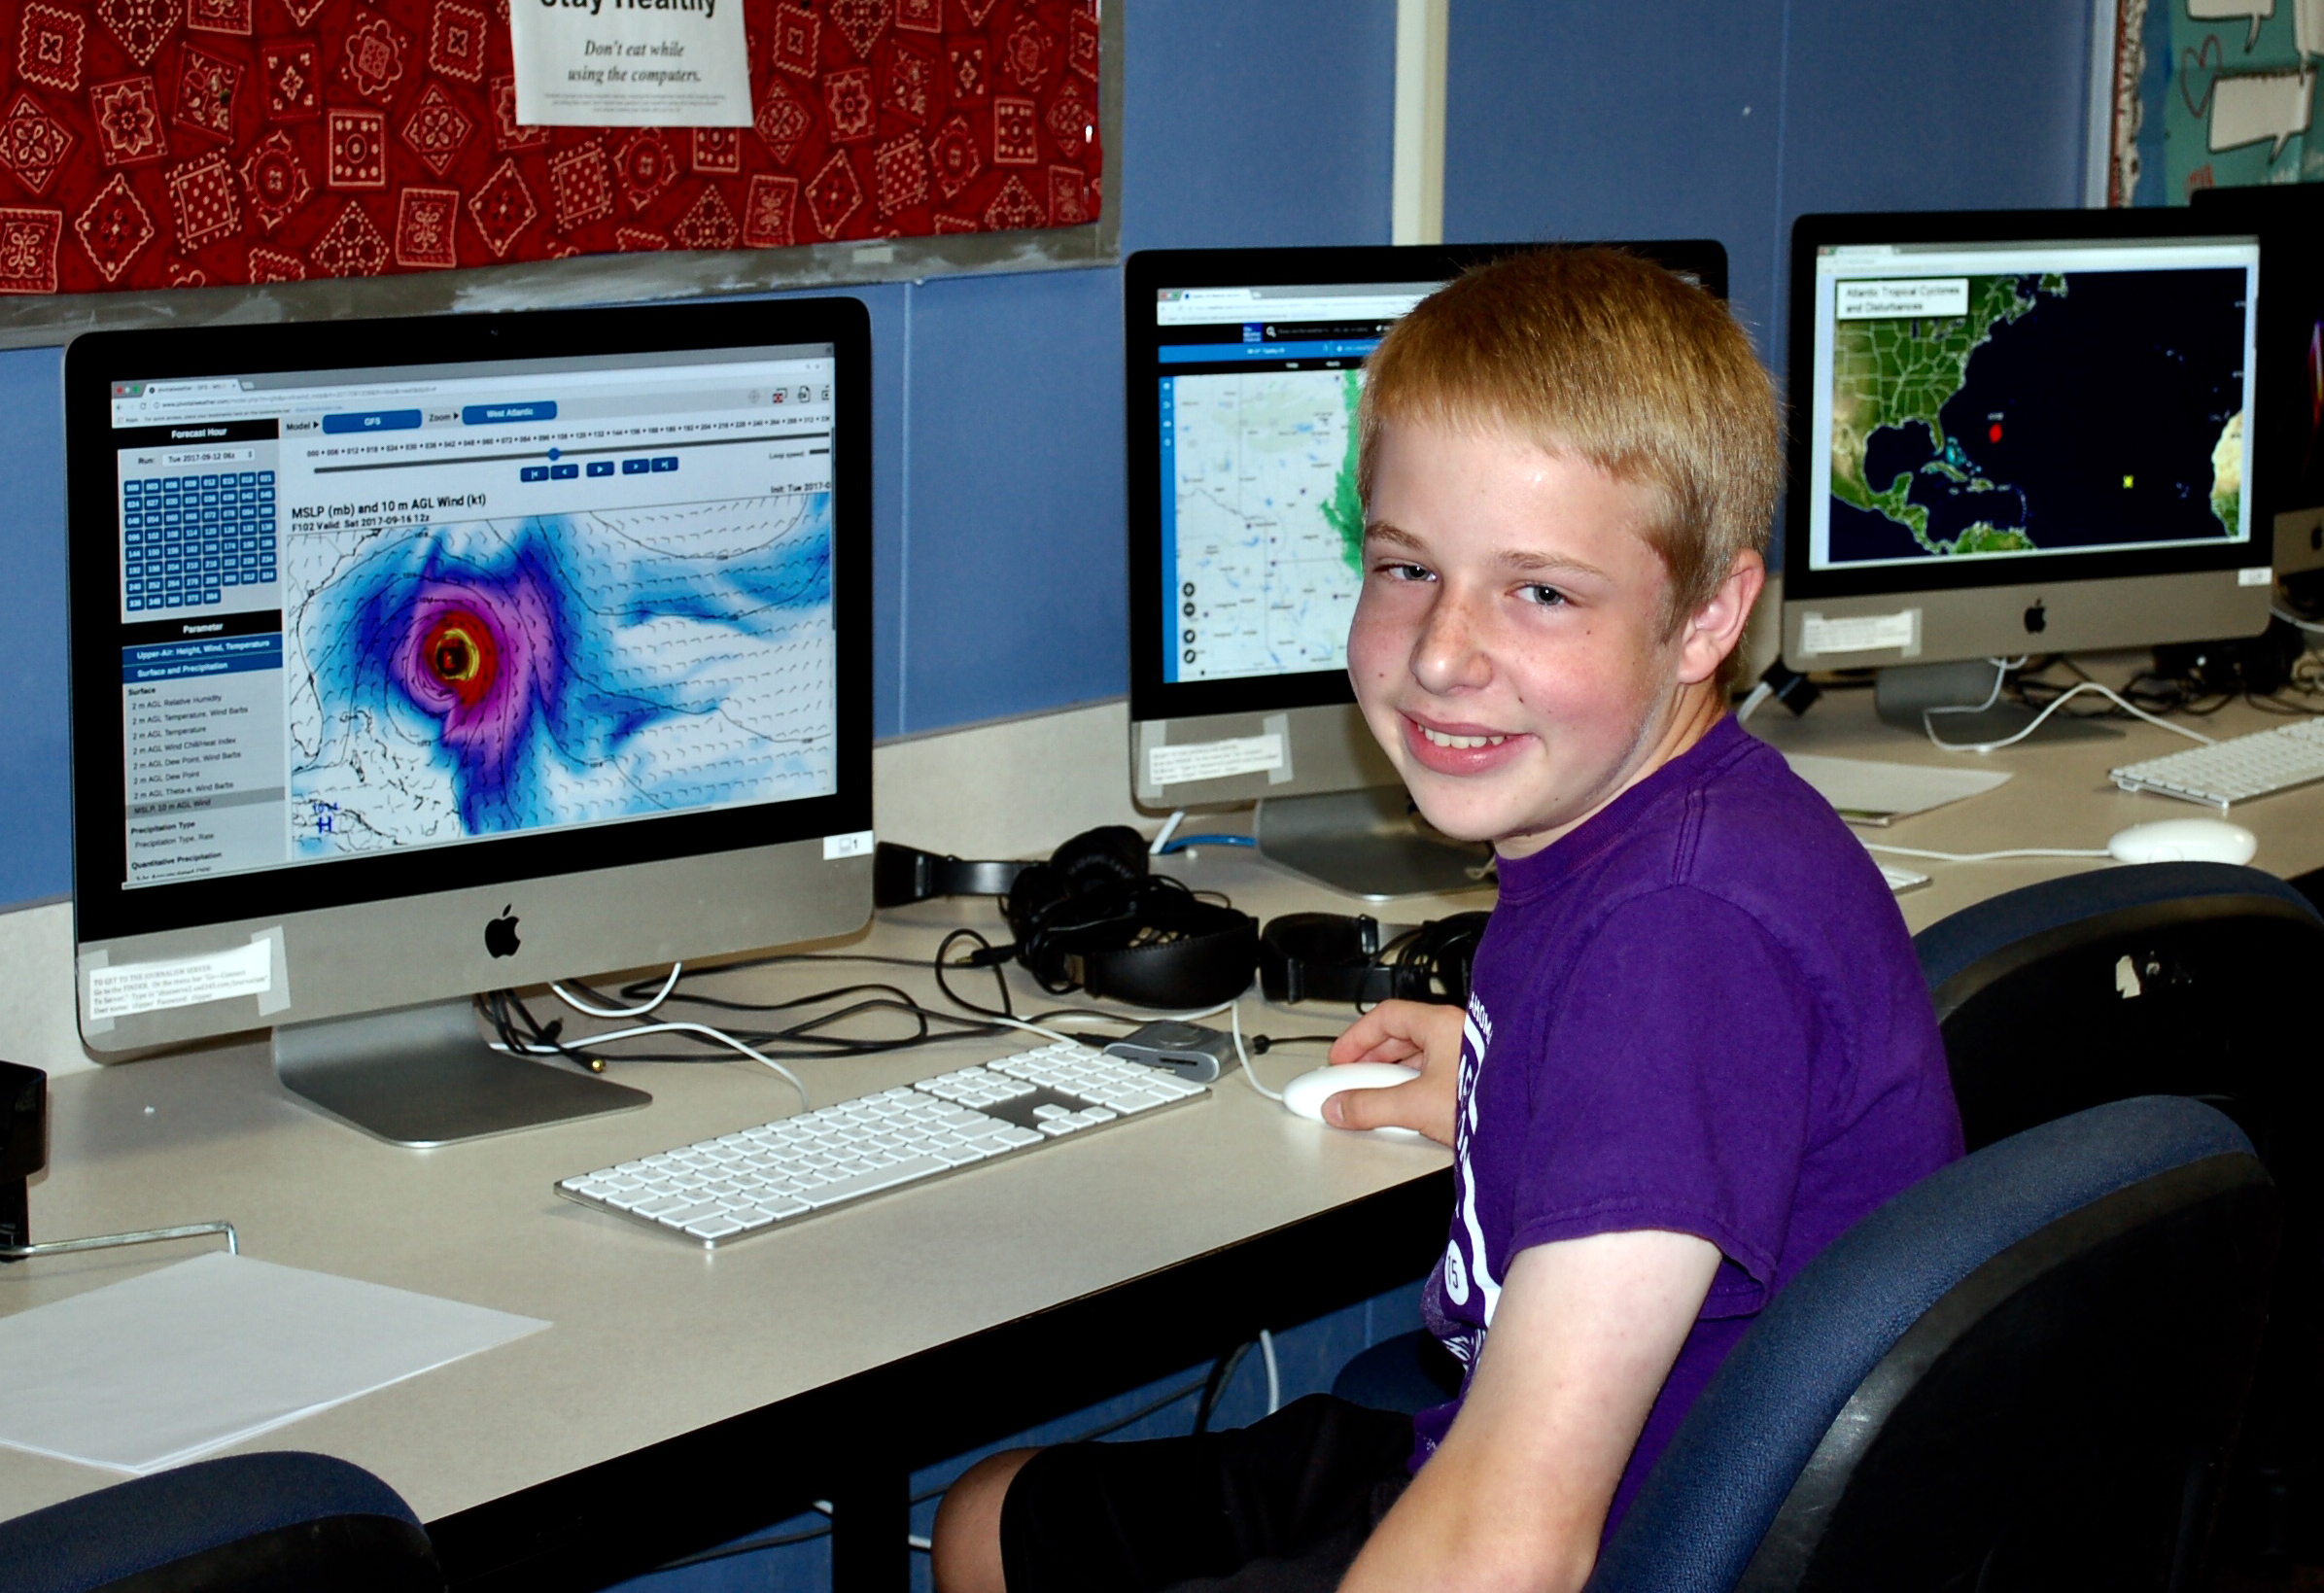 Never calm before the storm: Enthusiasm for weather guides to future career